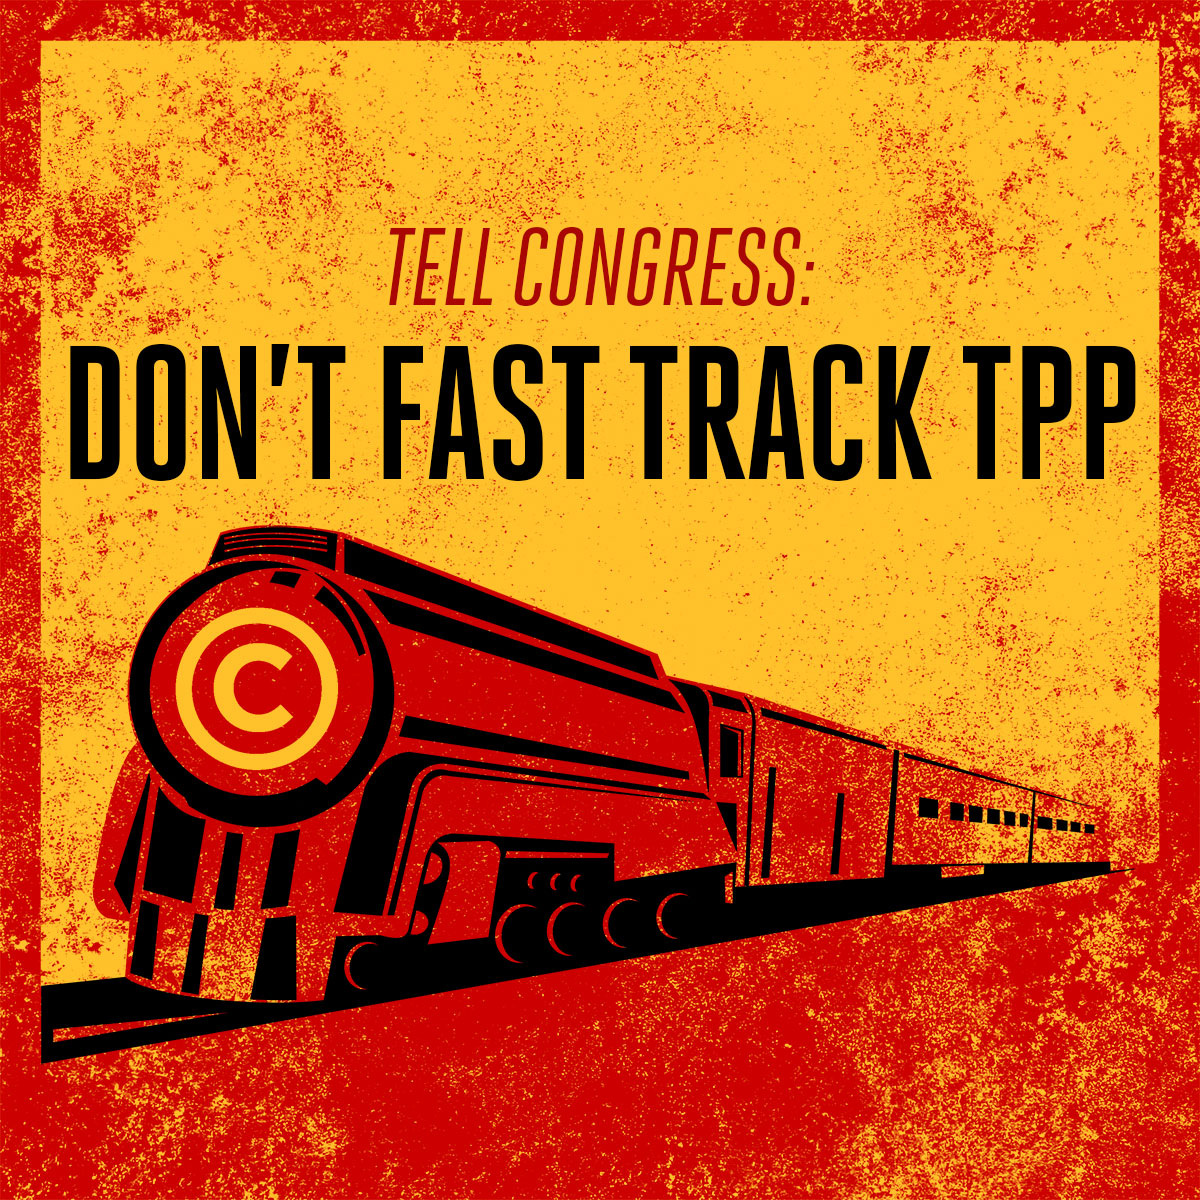 Don't Fast Track Train Image